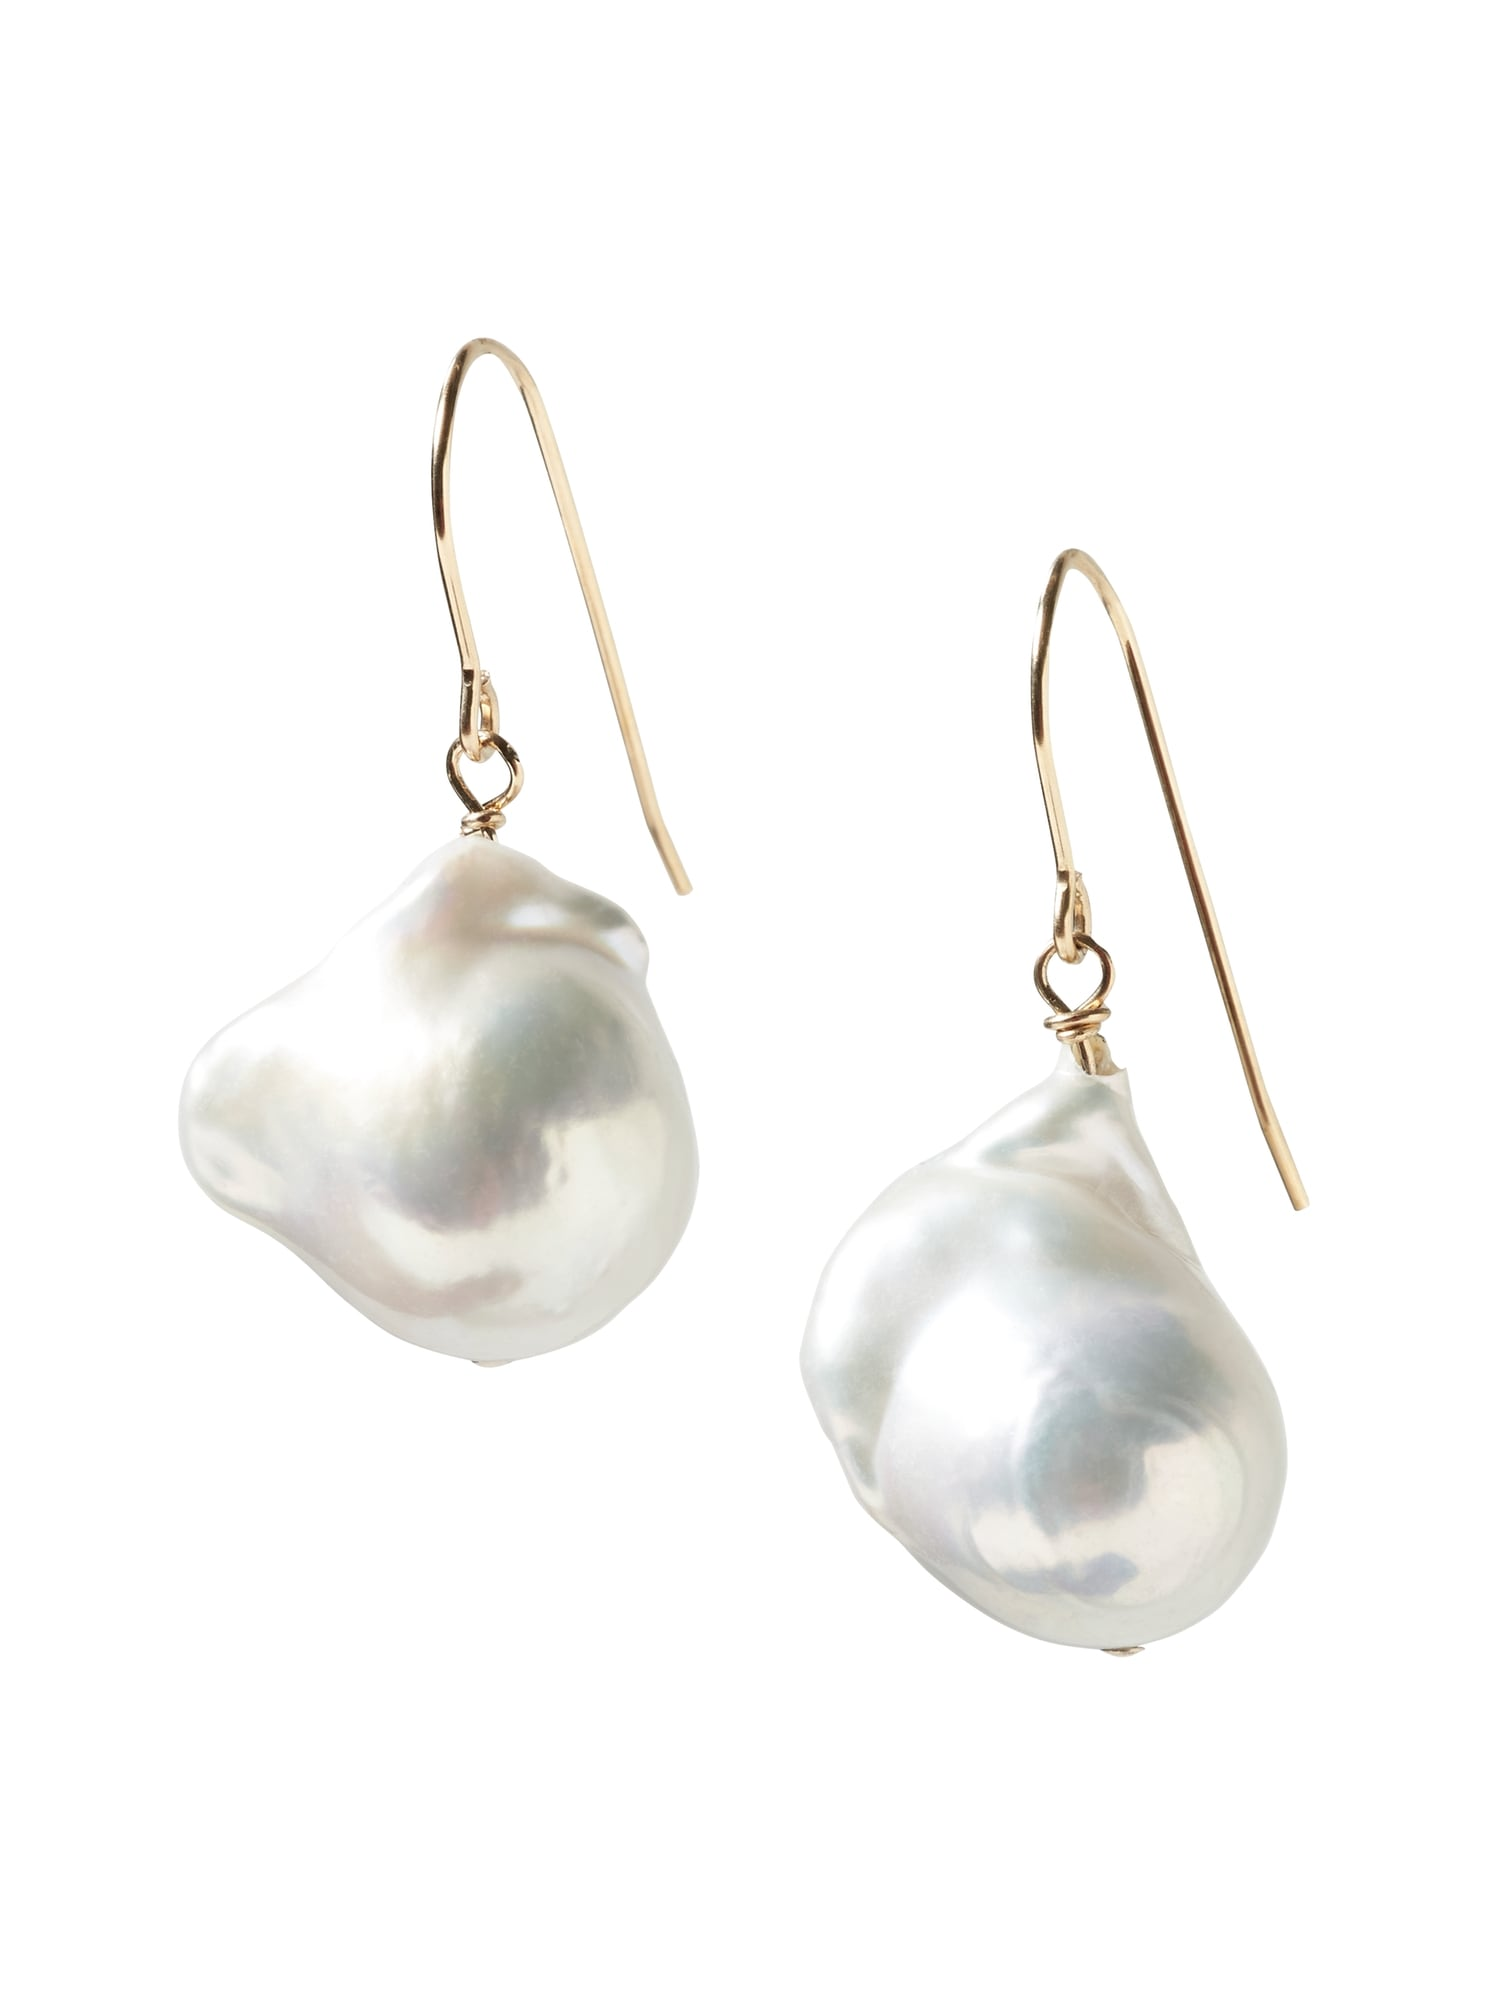 champagne pacificpearl shop pearls collection giant earrings on gold rose rakuten polynesia pink baroque pacific pearl product